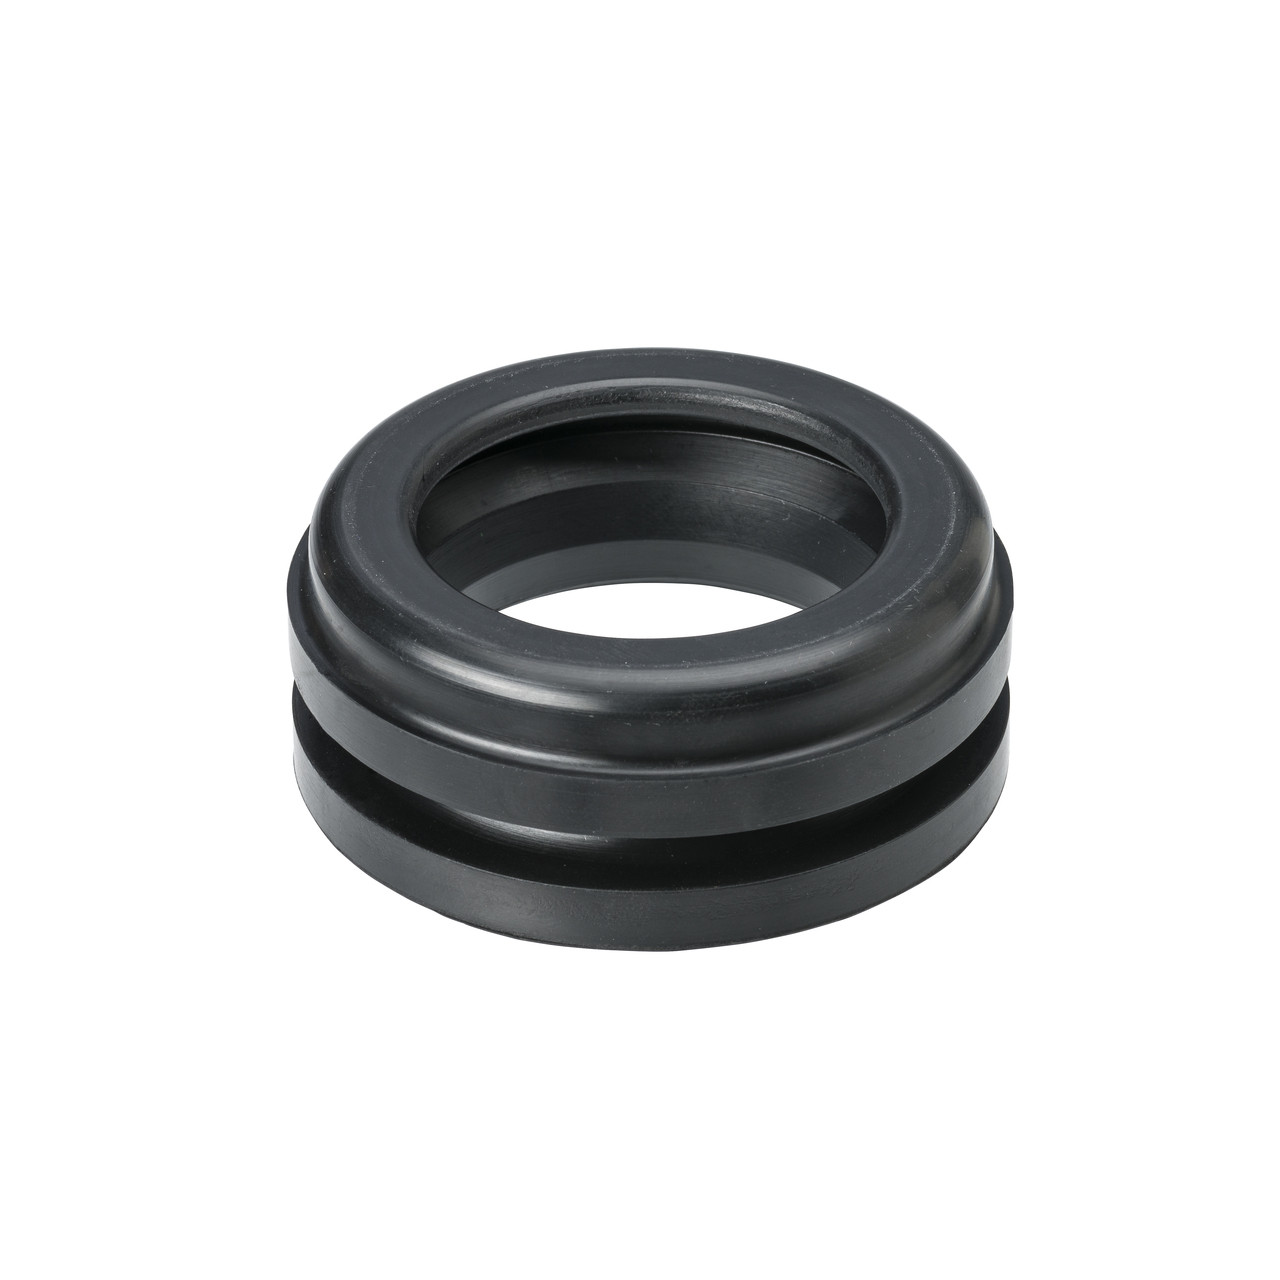 Mopar B Body Fuel Tank Grommet Filler Neck Seal